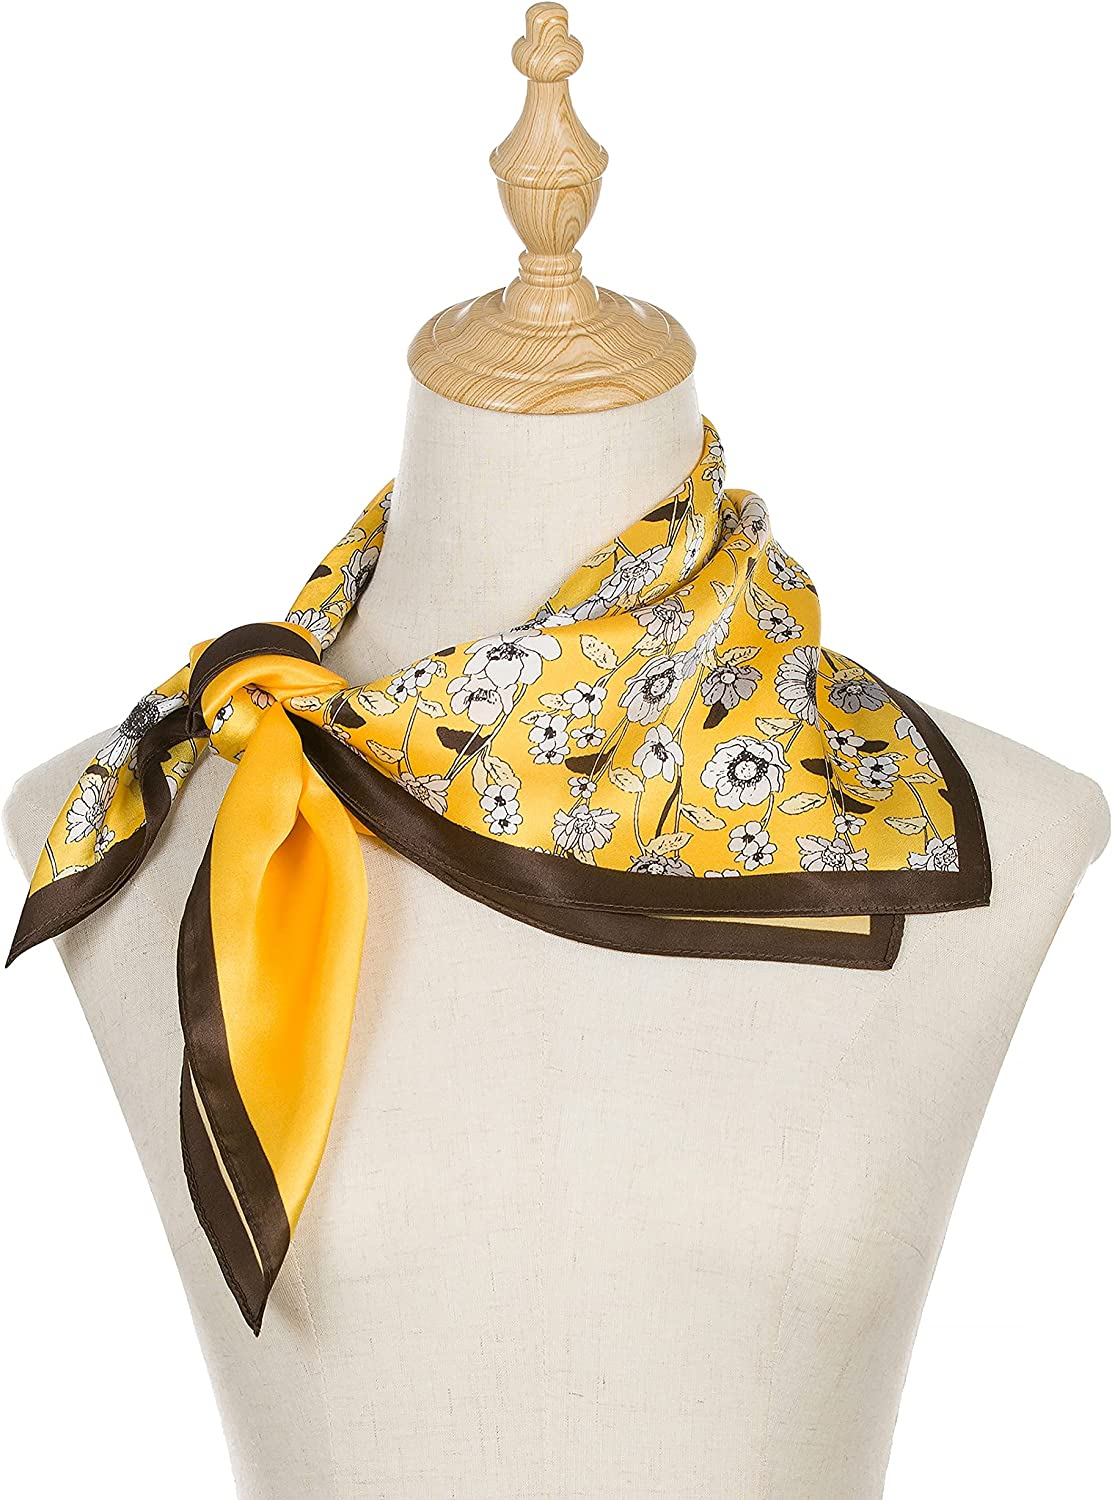 100% Mulberry Silk Scarf, Yellow Flower Designer Head Scarf, Silk Scarf For Hair Wrapping At Night, Pure Silk Scarf For Women, Square Silk Fabric Neckerchief